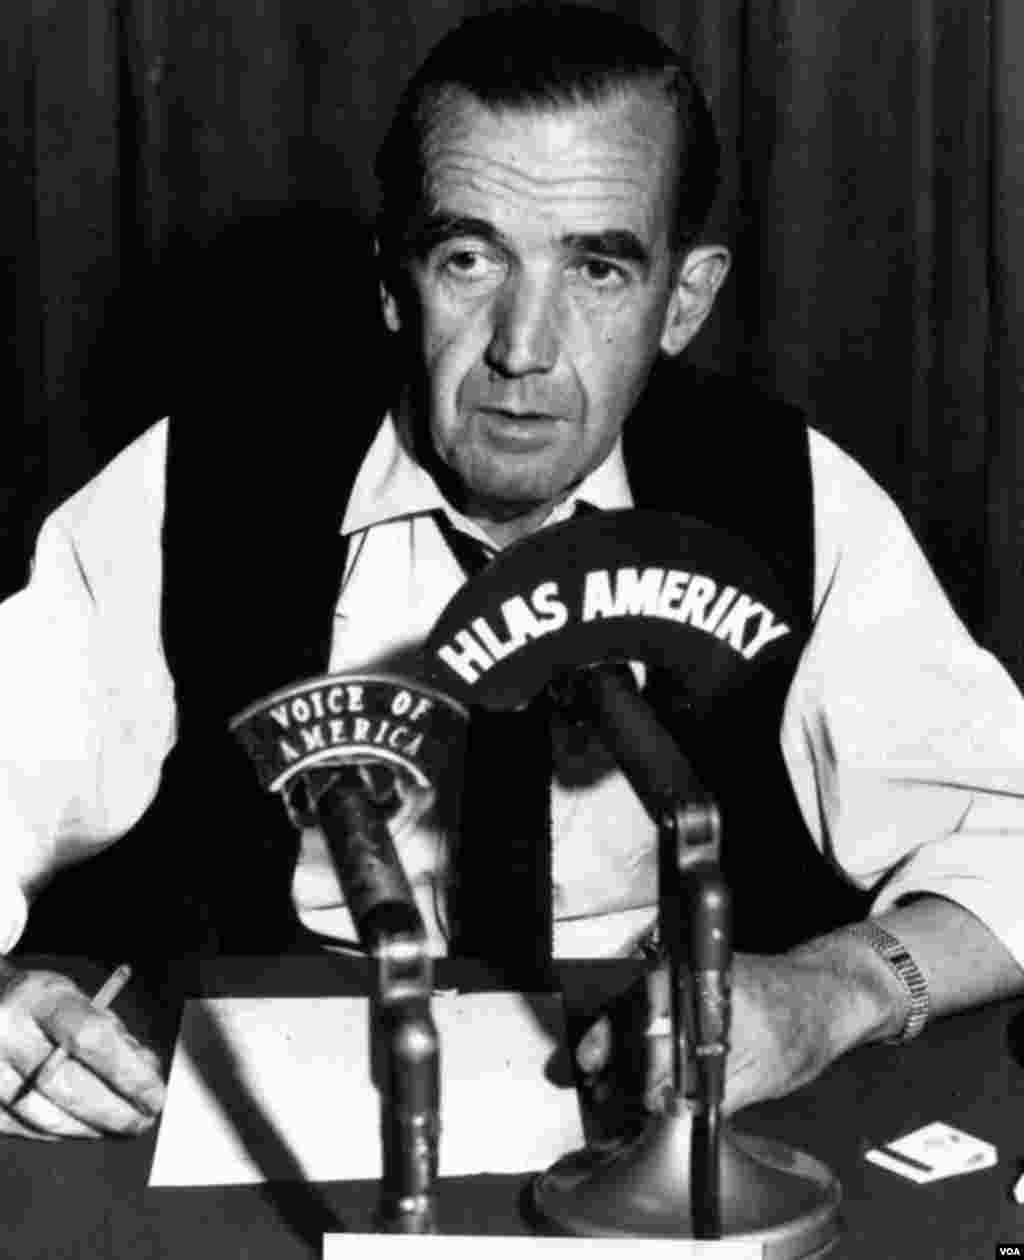 Edward R. Murrow, legendary journalist and Director of the U.S. Information Agency, VOA's parent organization, 1961-1964.